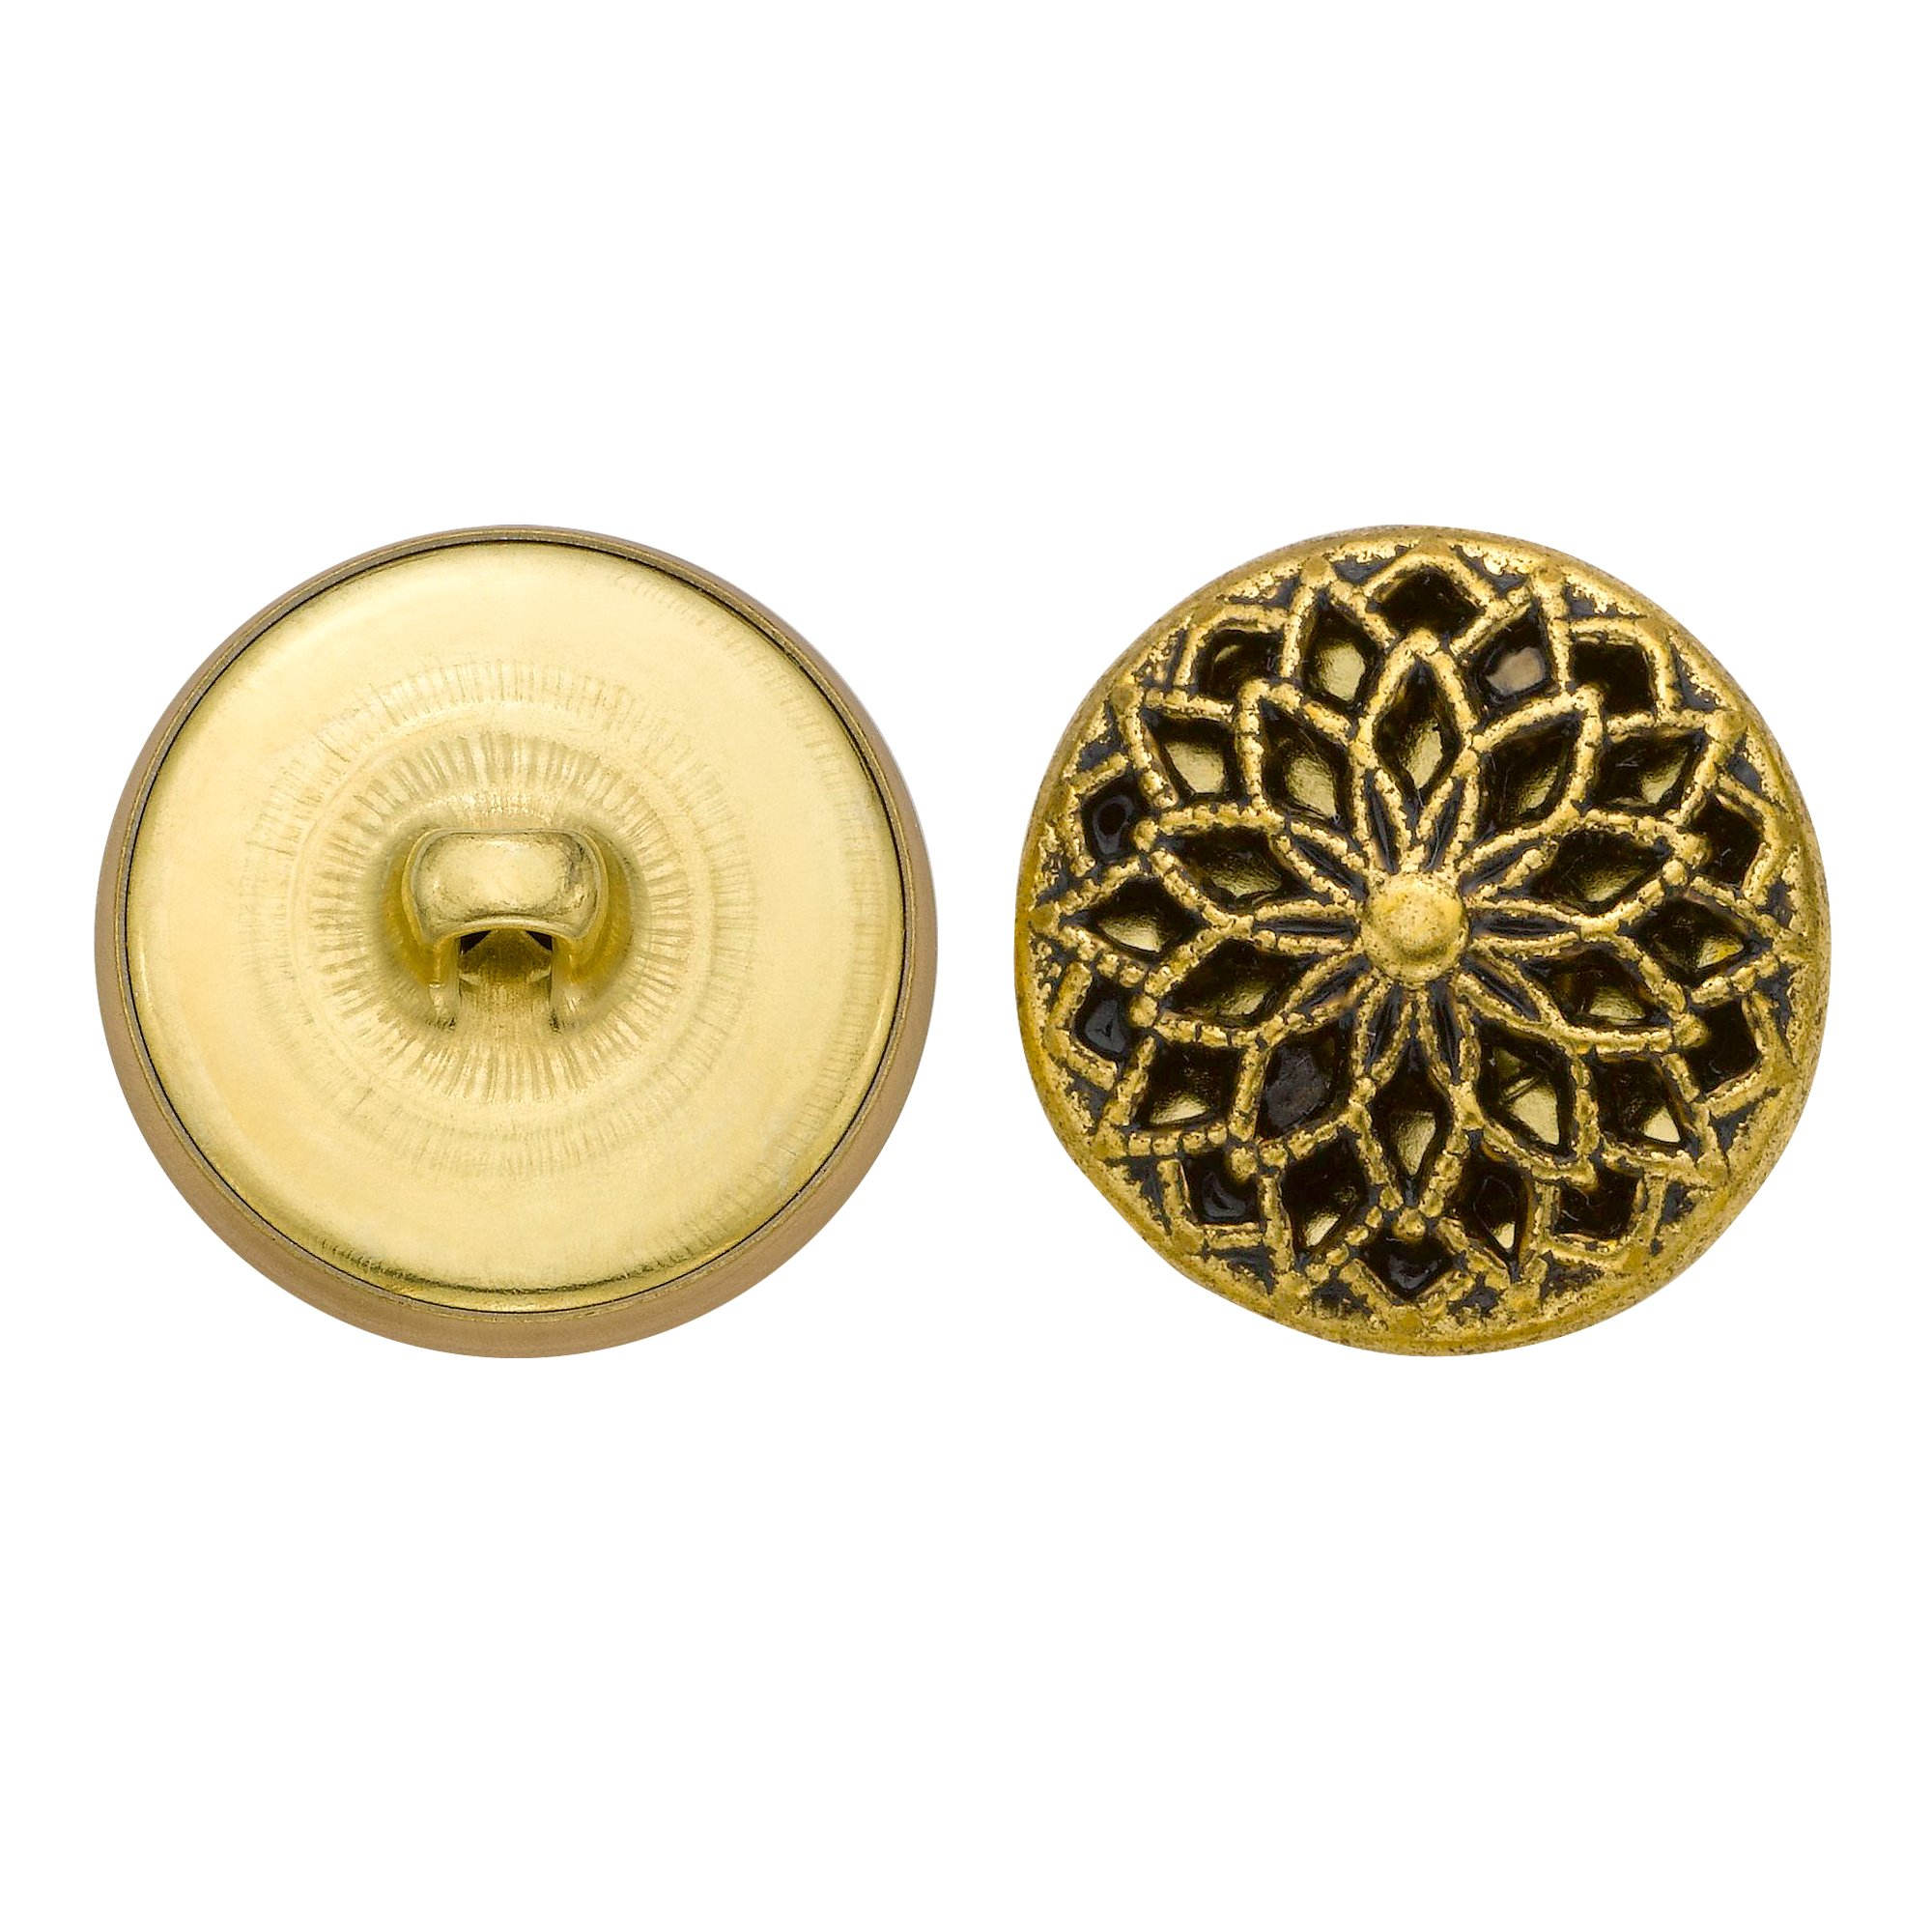 C&C Metal Products 5353 Filigree Metal Button, Size 36 Ligne, Antique Gold, 36-Pack by G & S Metal Products Company